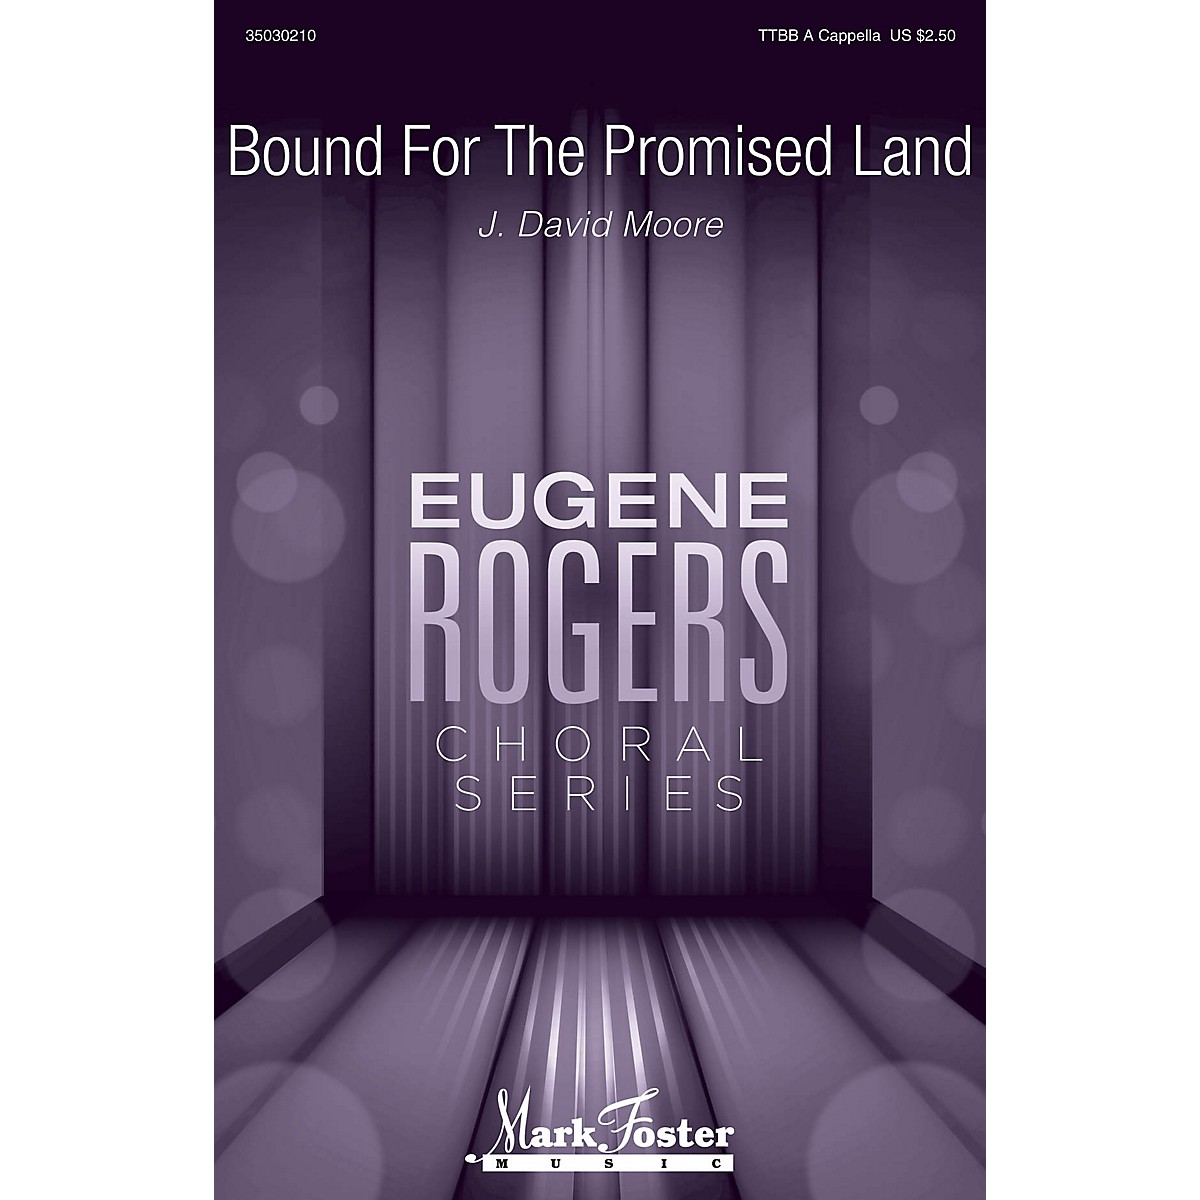 Mark Foster Bound for the Promised Land (Eugene Rogers Choral Series) TTBB composed by J. David Moore